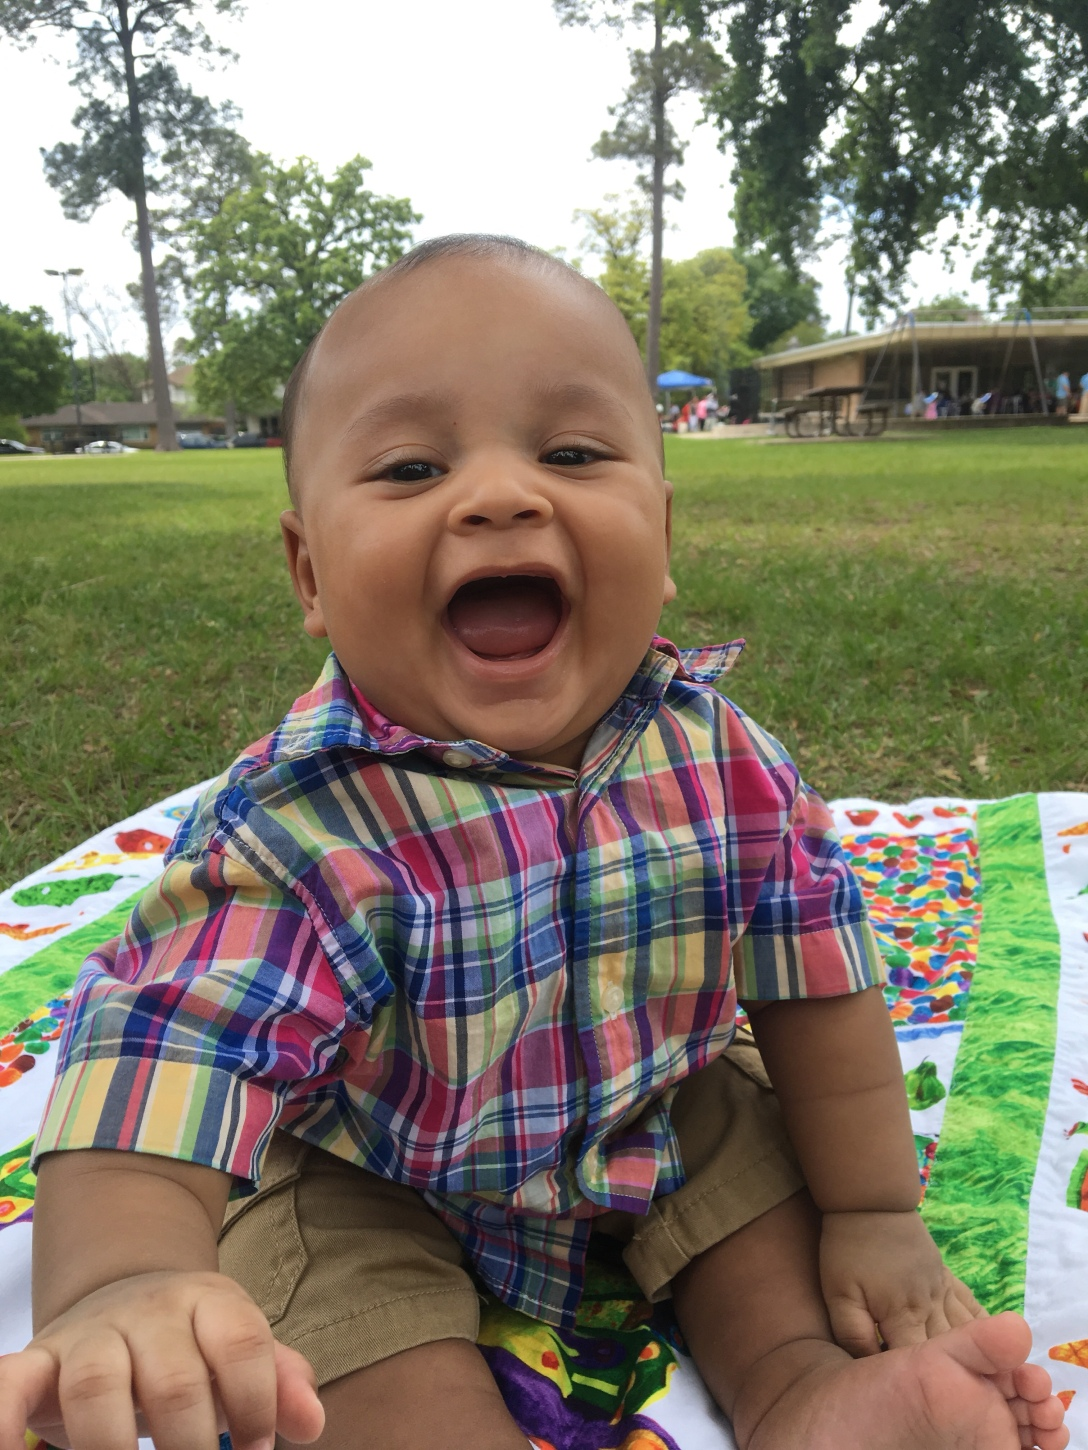 Buddha laughing away on Easter in his fun multicolored plaid Polo Ralph Lauren shirt.